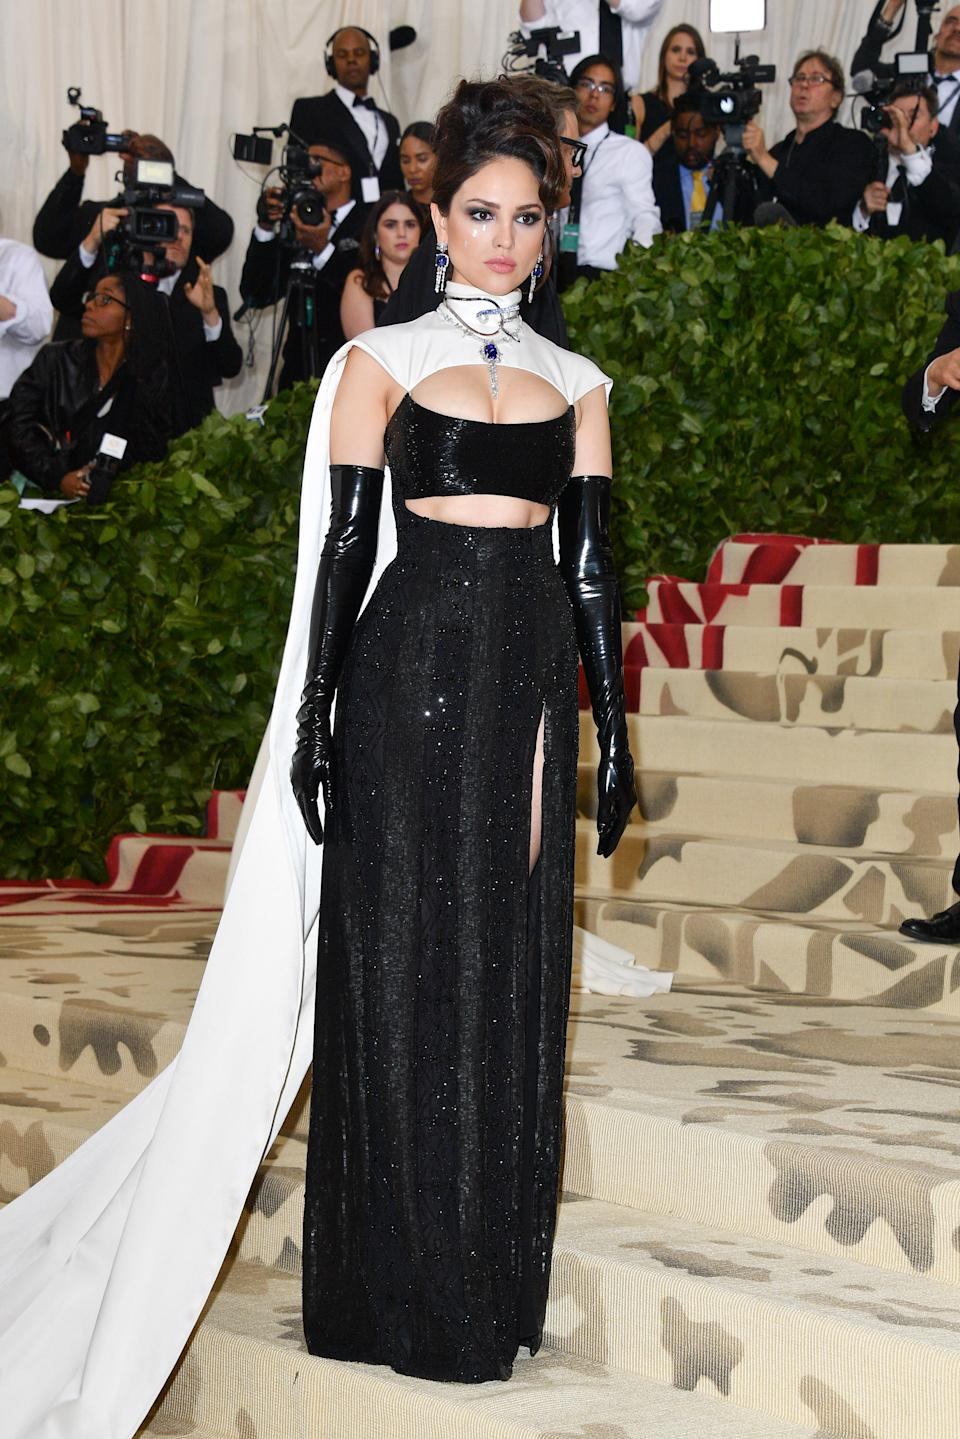 NEW YORK, NY - MAY 07:  Eiza Gonzalez attends the Heavenly Bodies: Fashion & The Catholic Imagination Costume Institute Gala at Metropolitan Museum of Art on May 7, 2018 in New York City.  (Photo by George Pimentel/Getty Images)